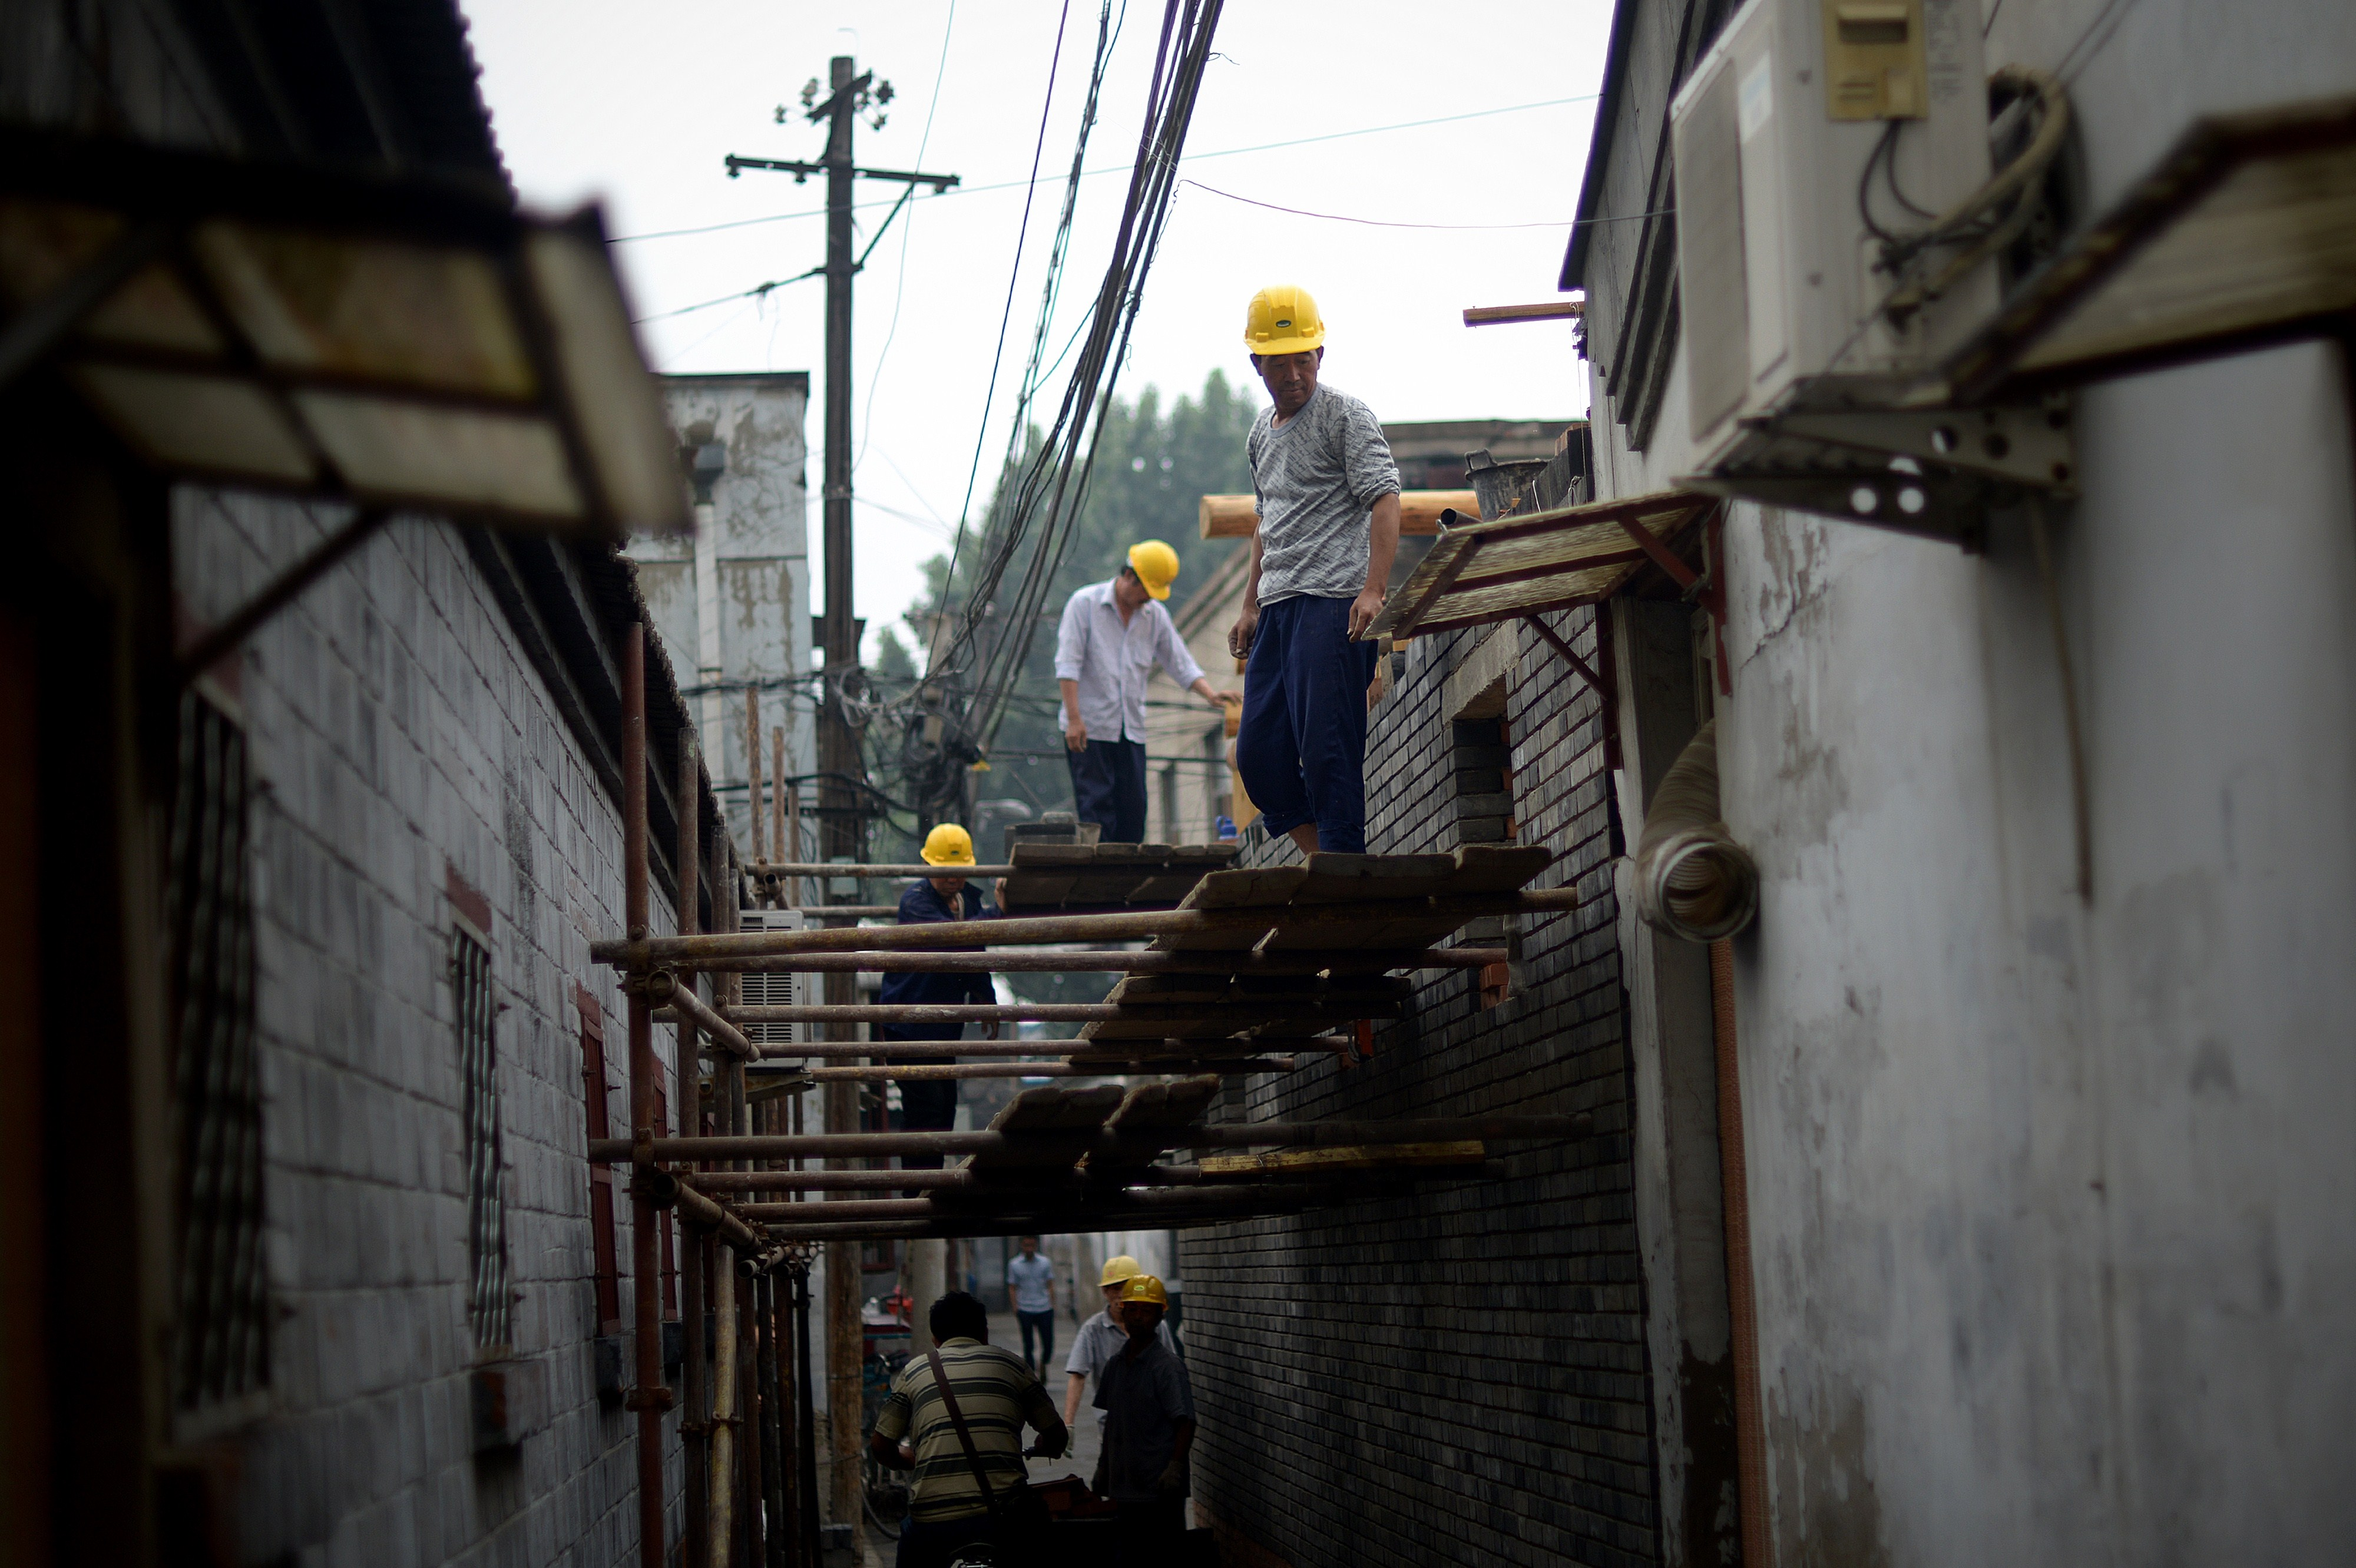 How China's Discriminatory Income Tax Law Targets the Poor